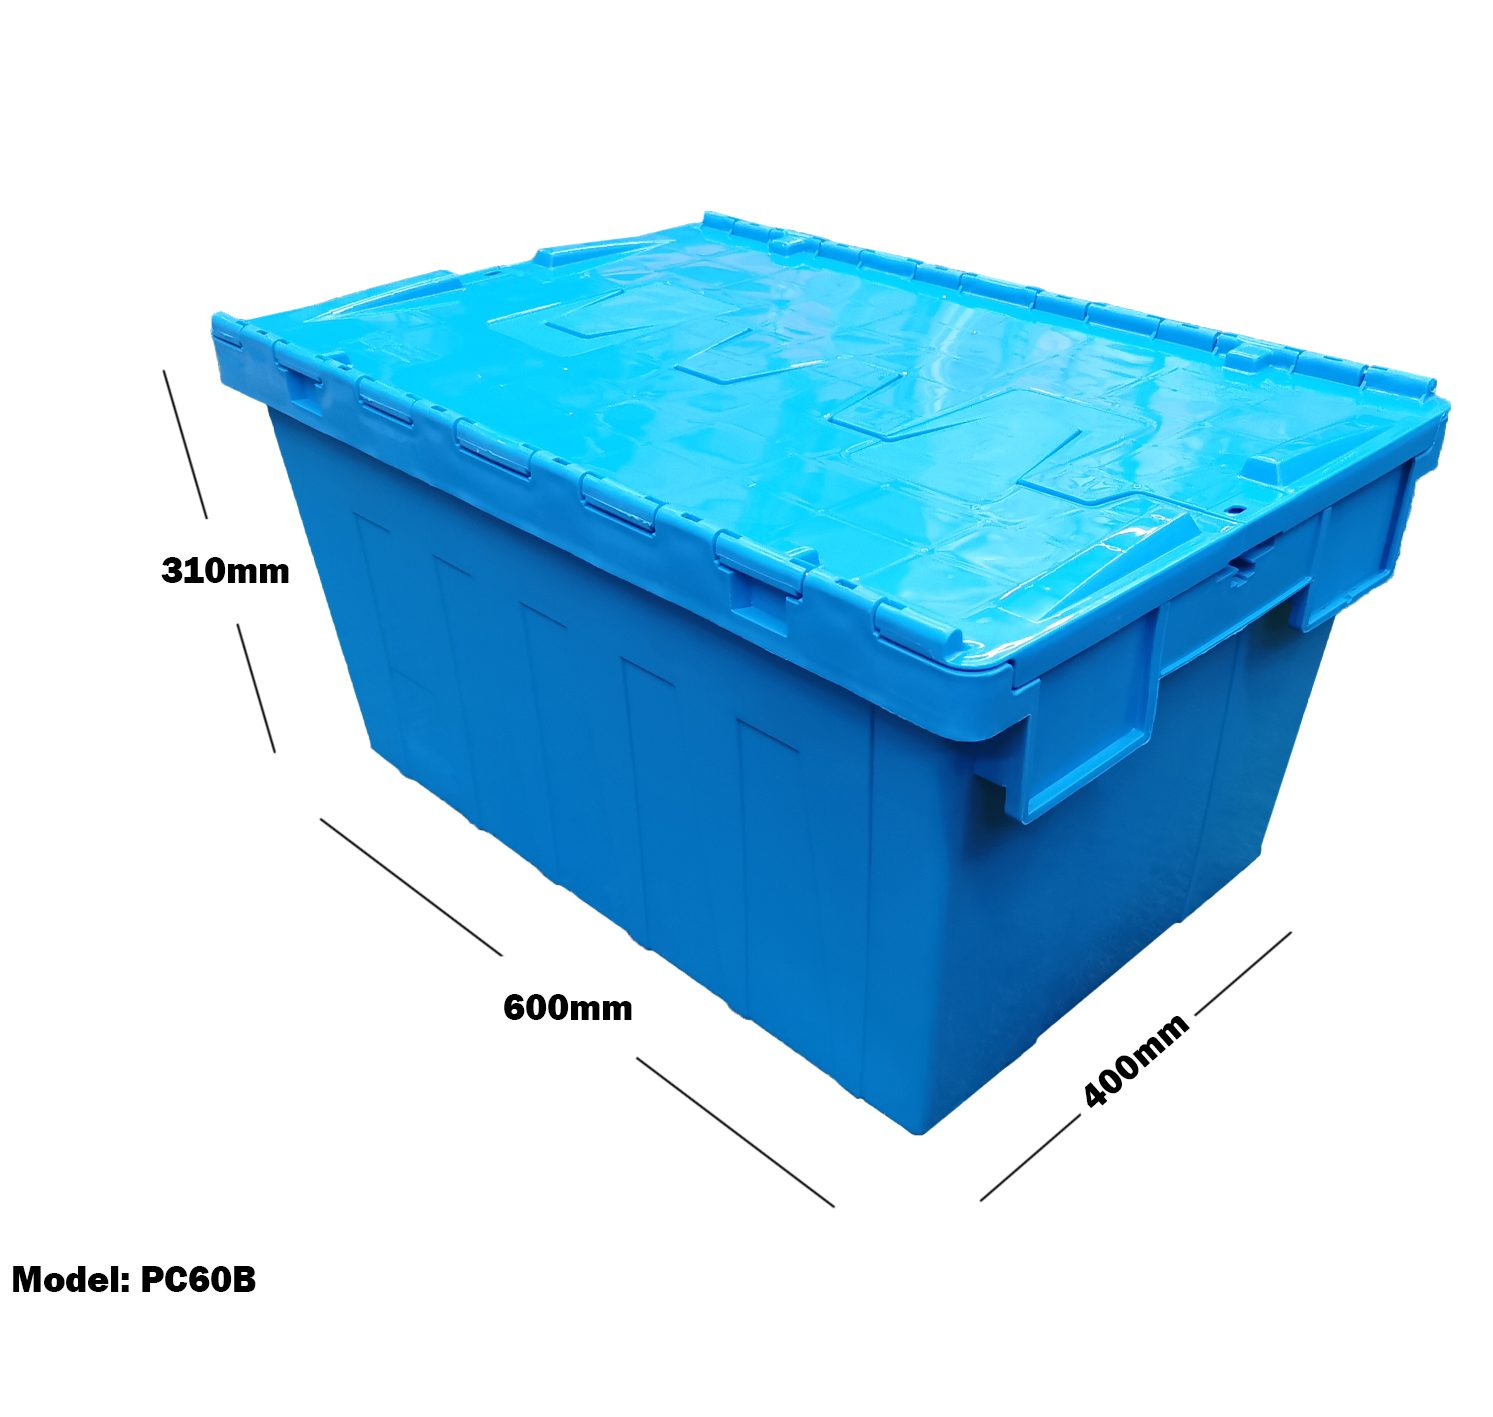 Plastic Container Storage Chest Tub with Lid PC60B